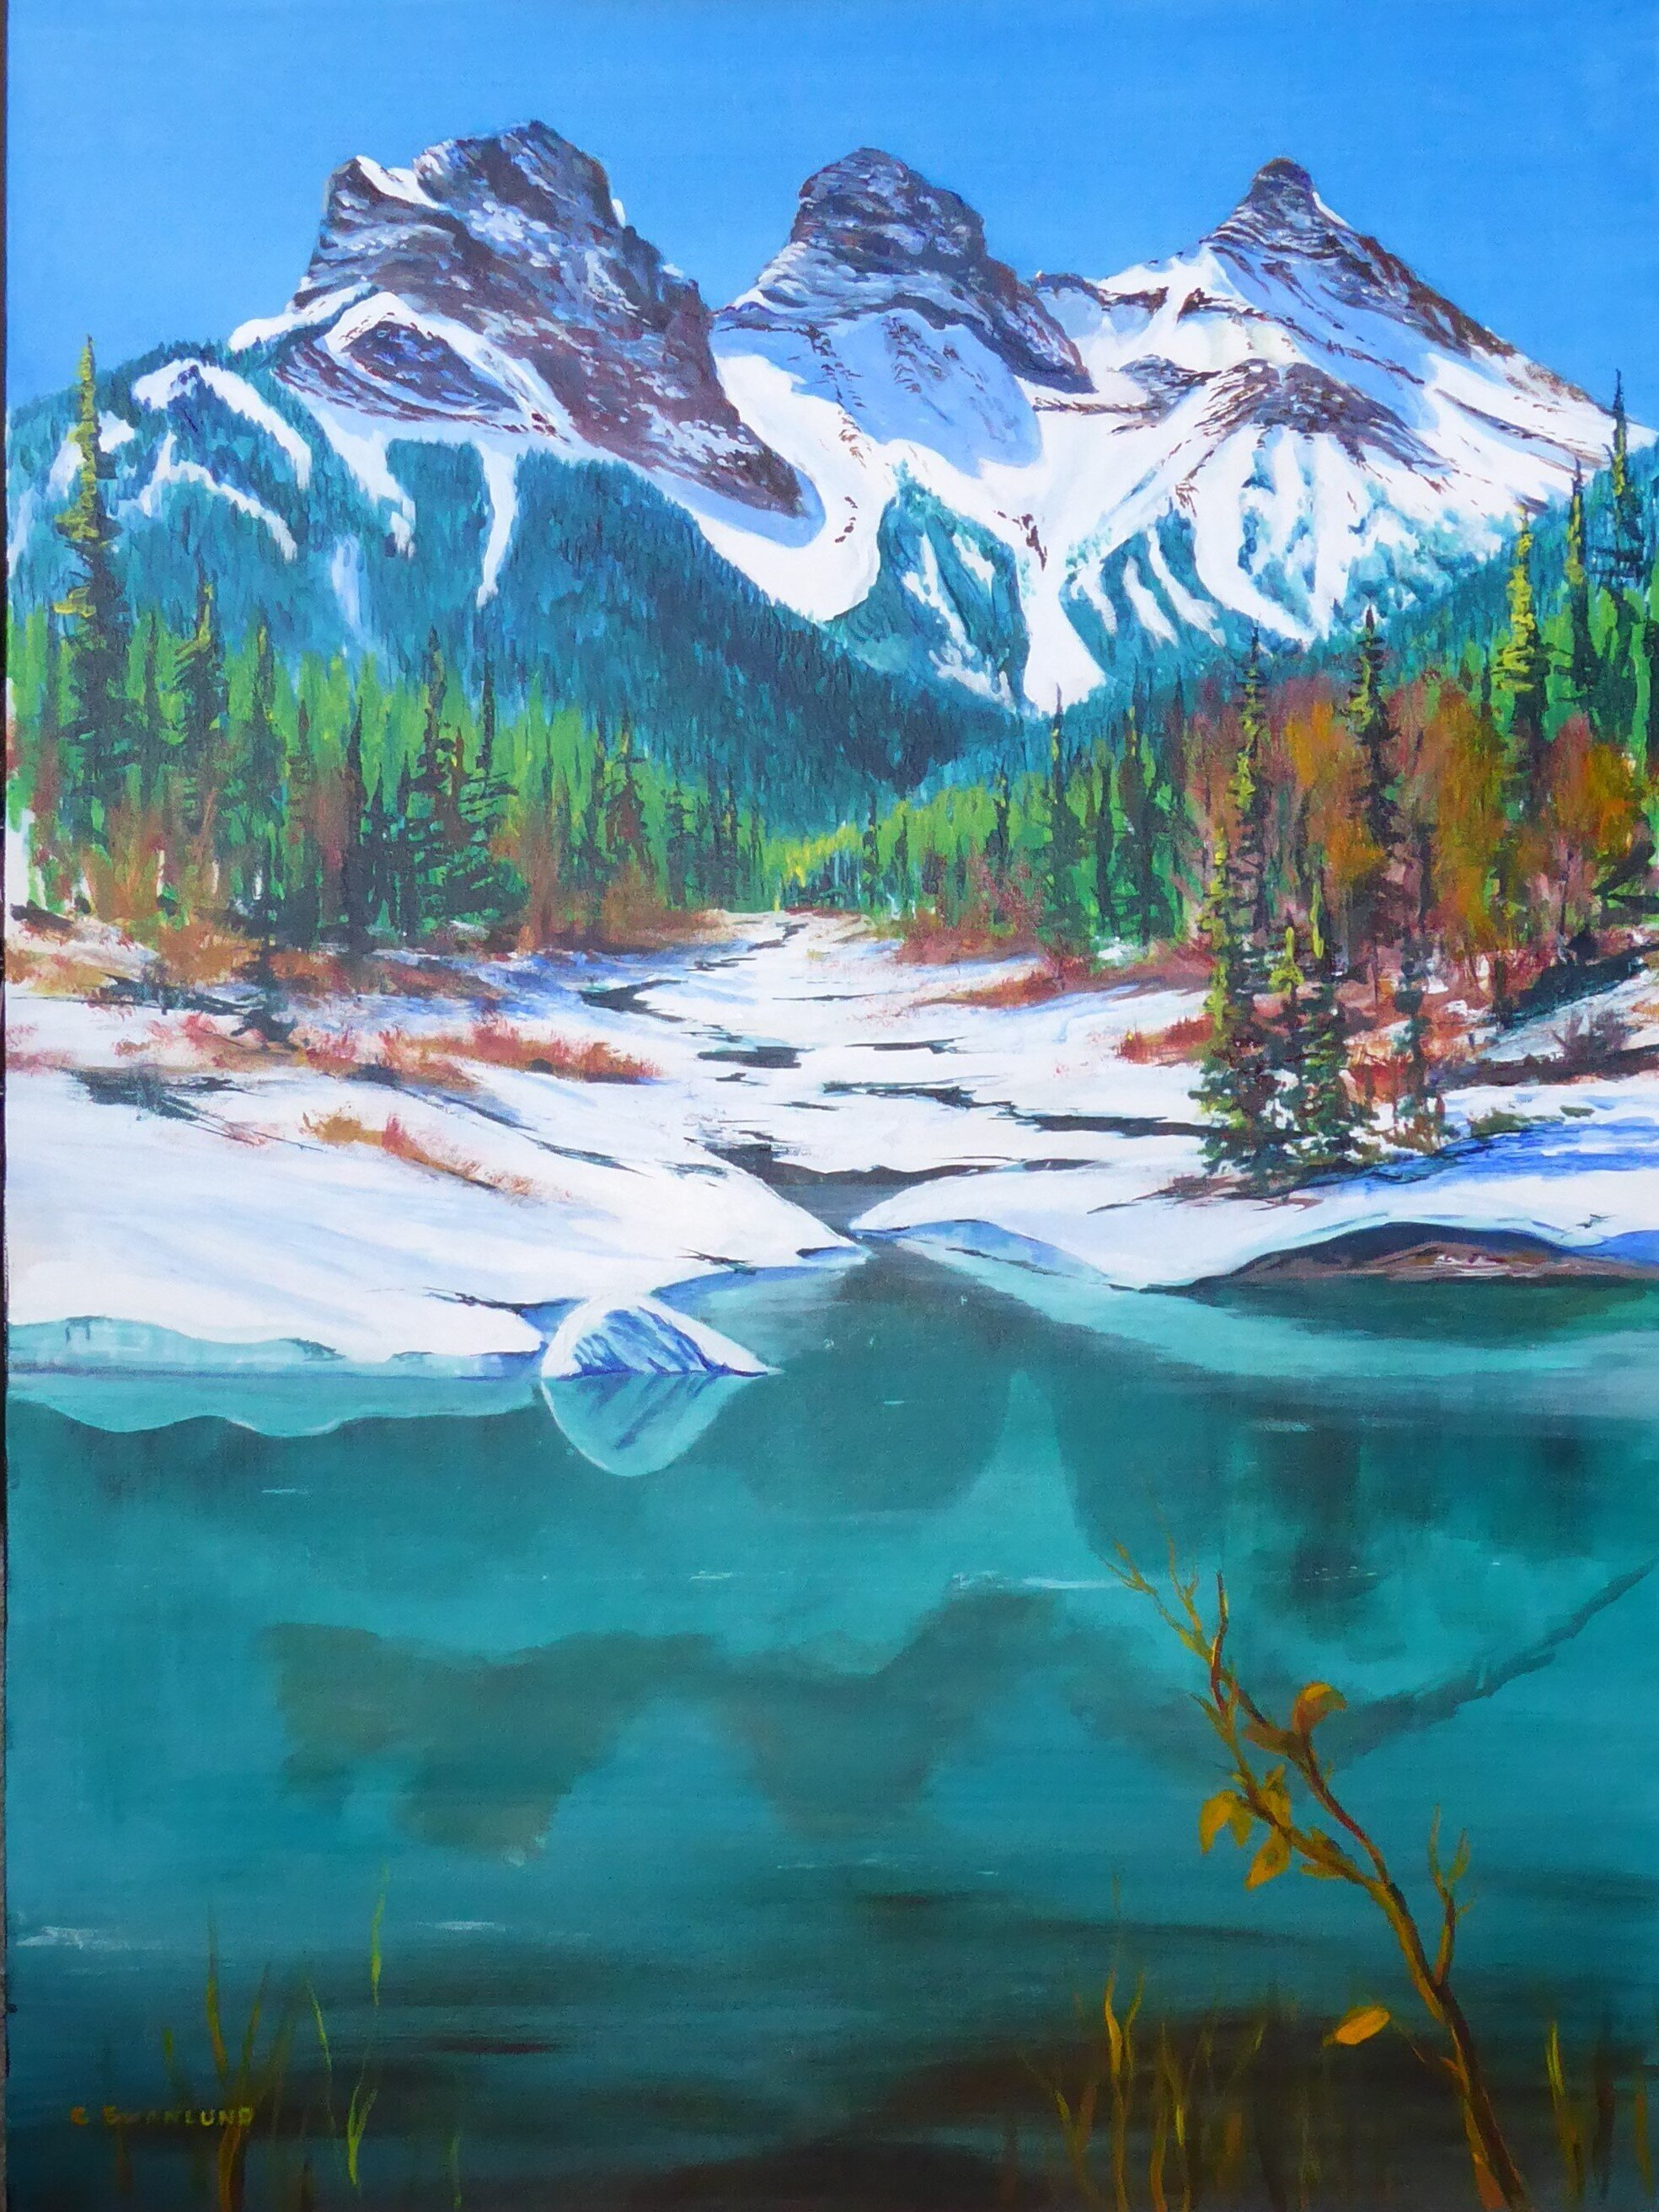 """available-""""1500.00""""-Springtime in the Rockies-36 by 48 inches-acylic on canvass"""